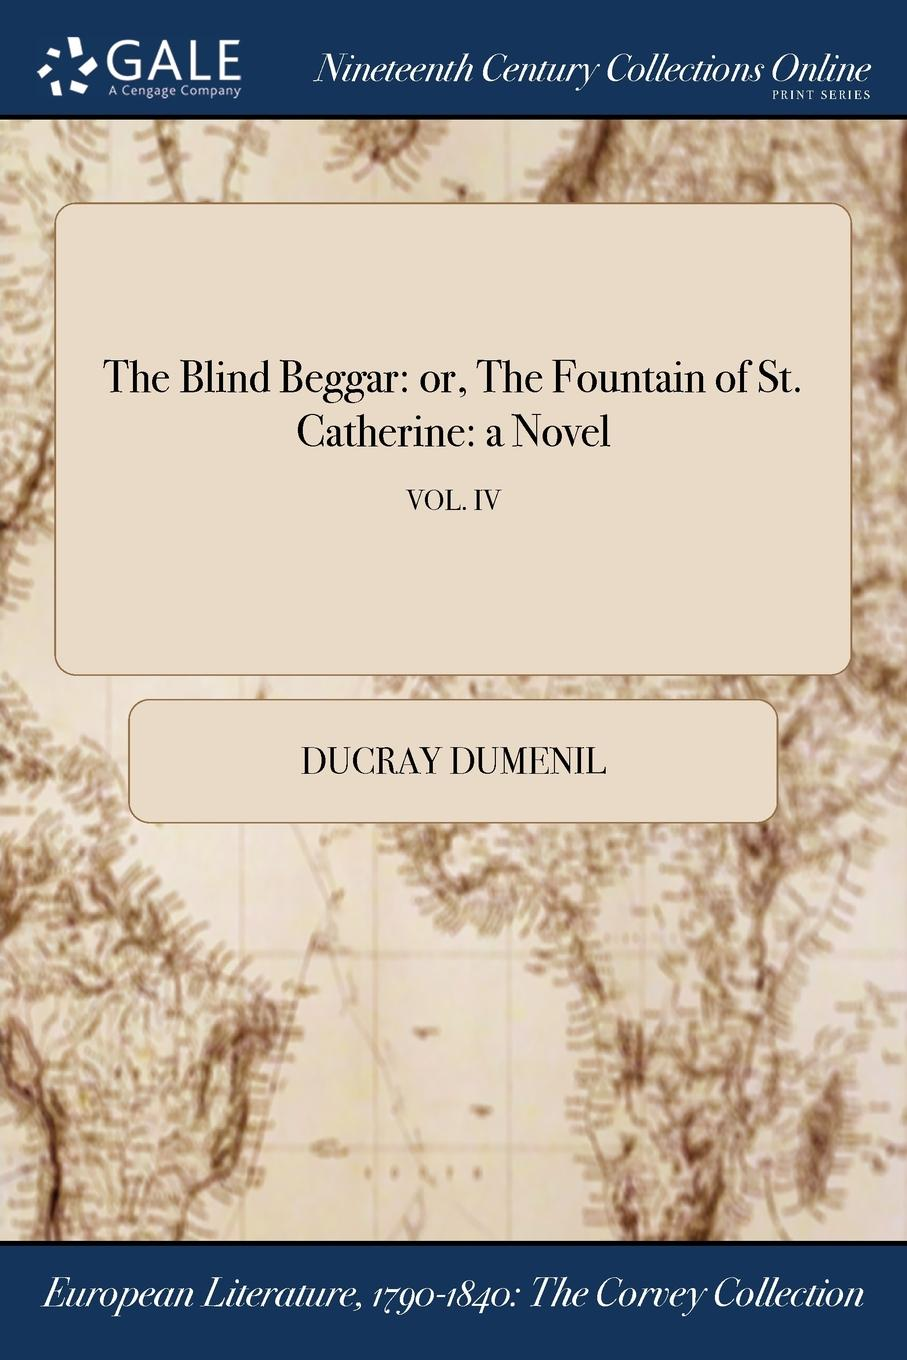 Ducray Dumenil The Blind Beggar. or, The Fountain of St. Catherine: a Novel; VOL. IV